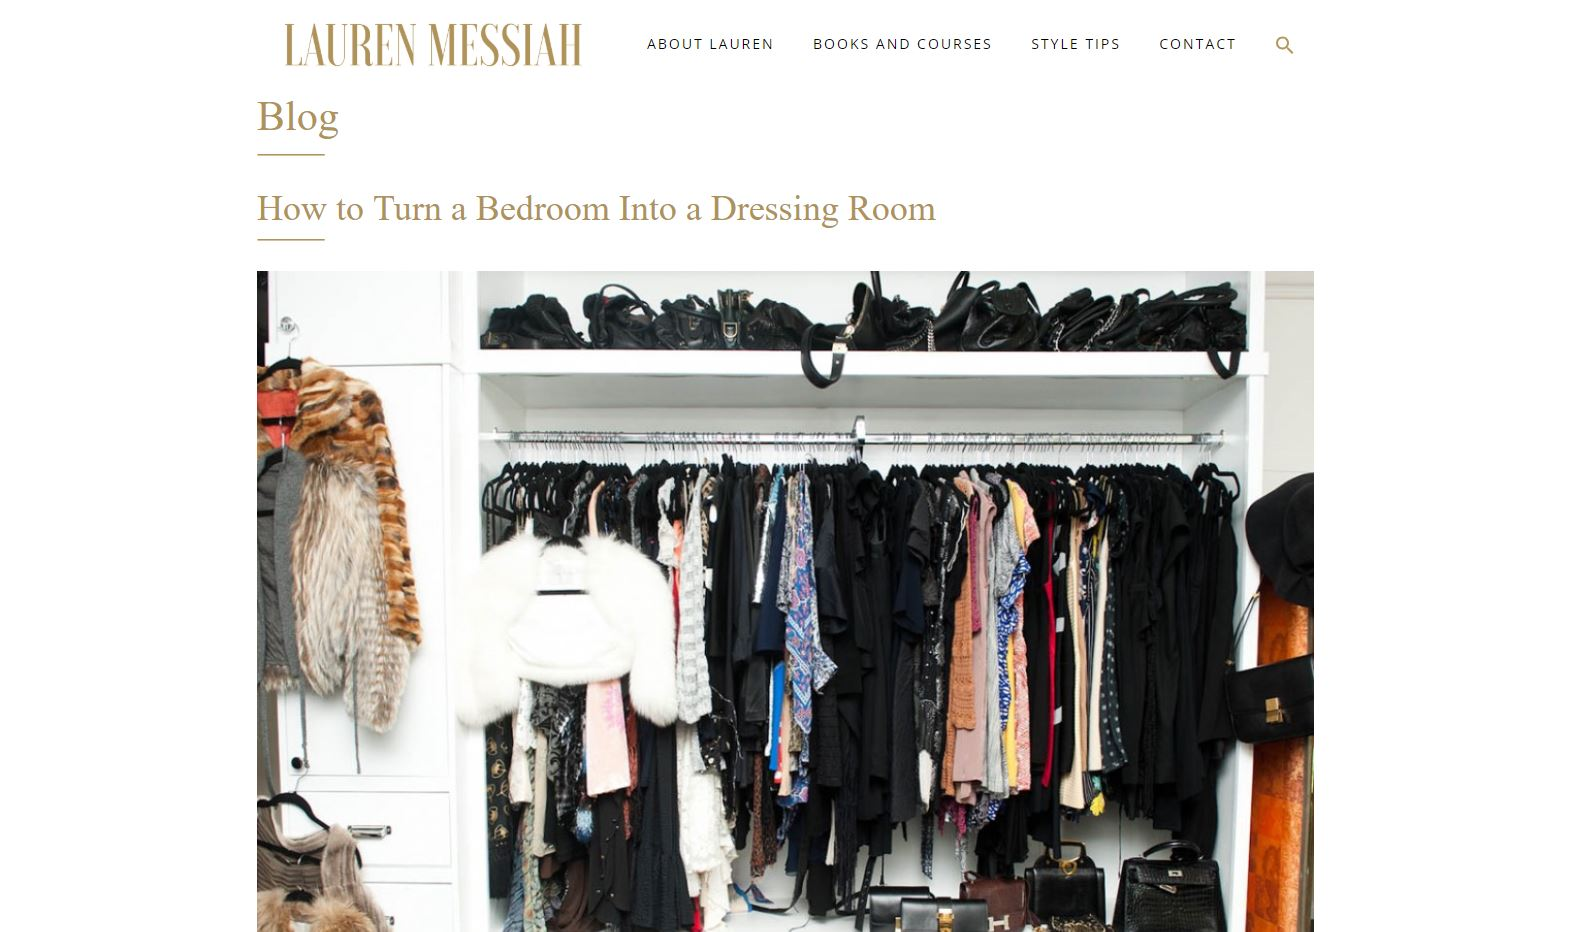 Lauren Messiah How to Turn a Bedroom into a Dressing Room